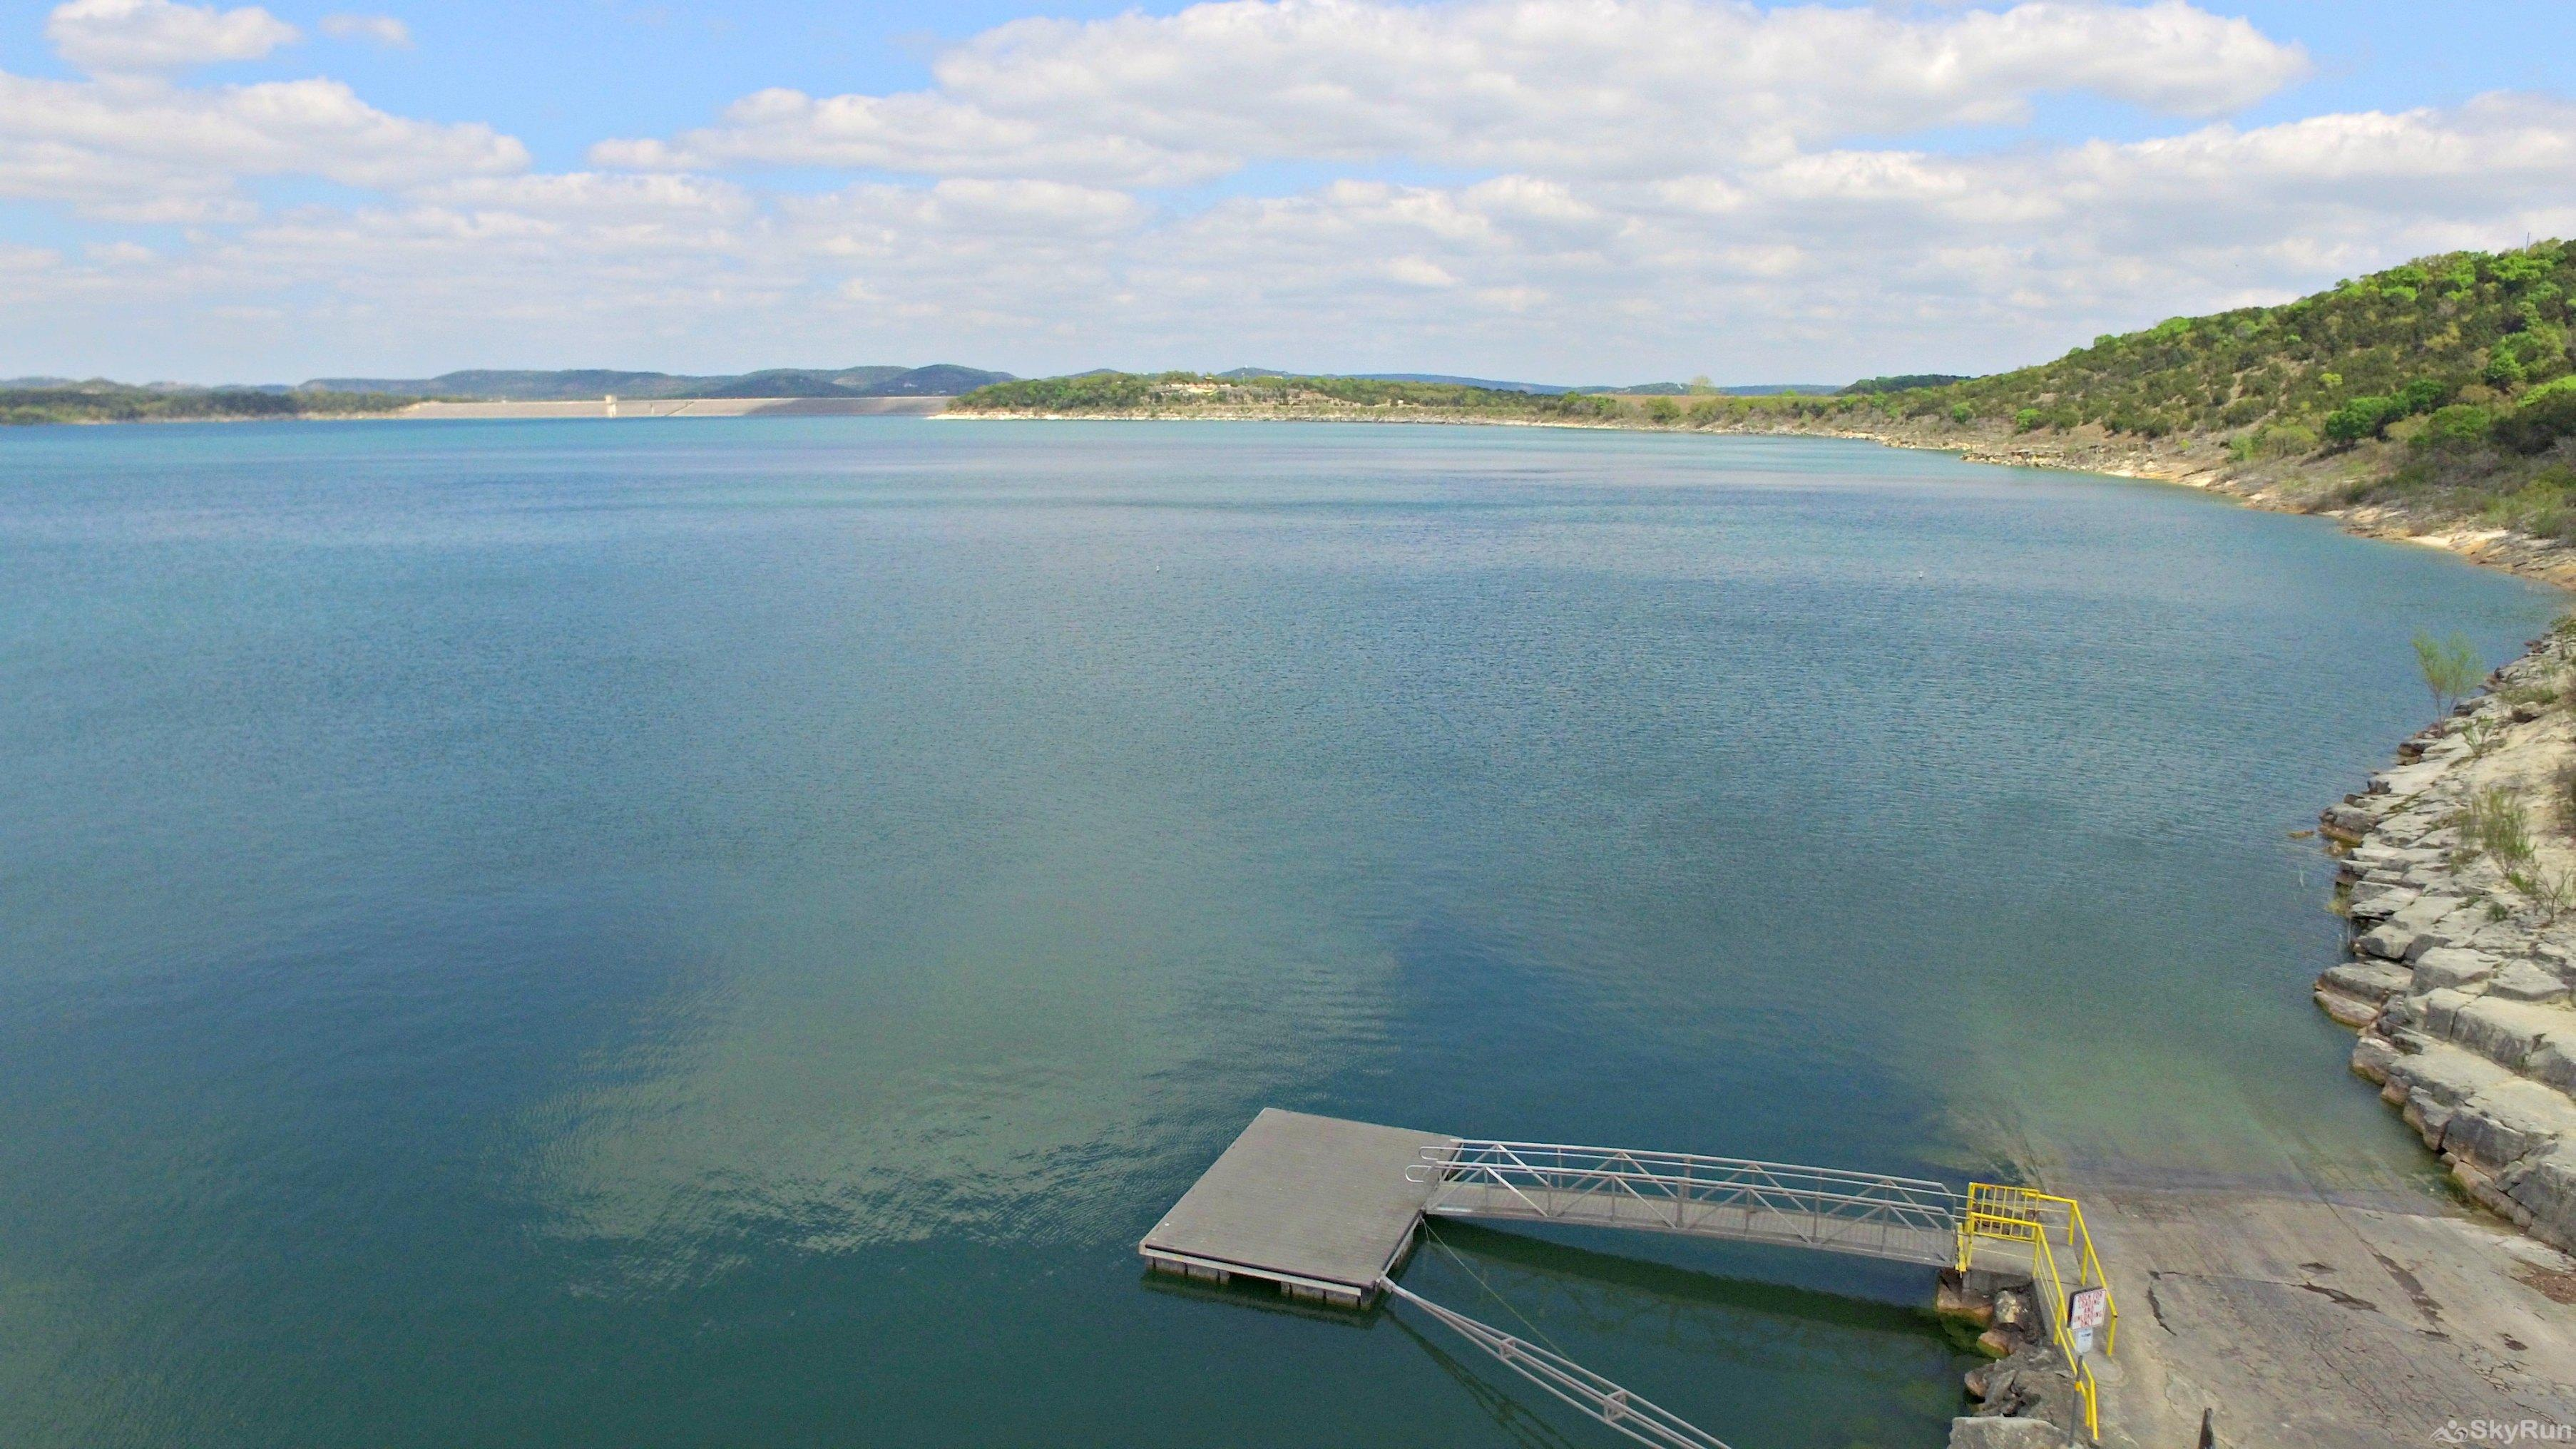 RIO VISTA ON THE GUADALUPE Explore scenic Canyon Lake during your stay